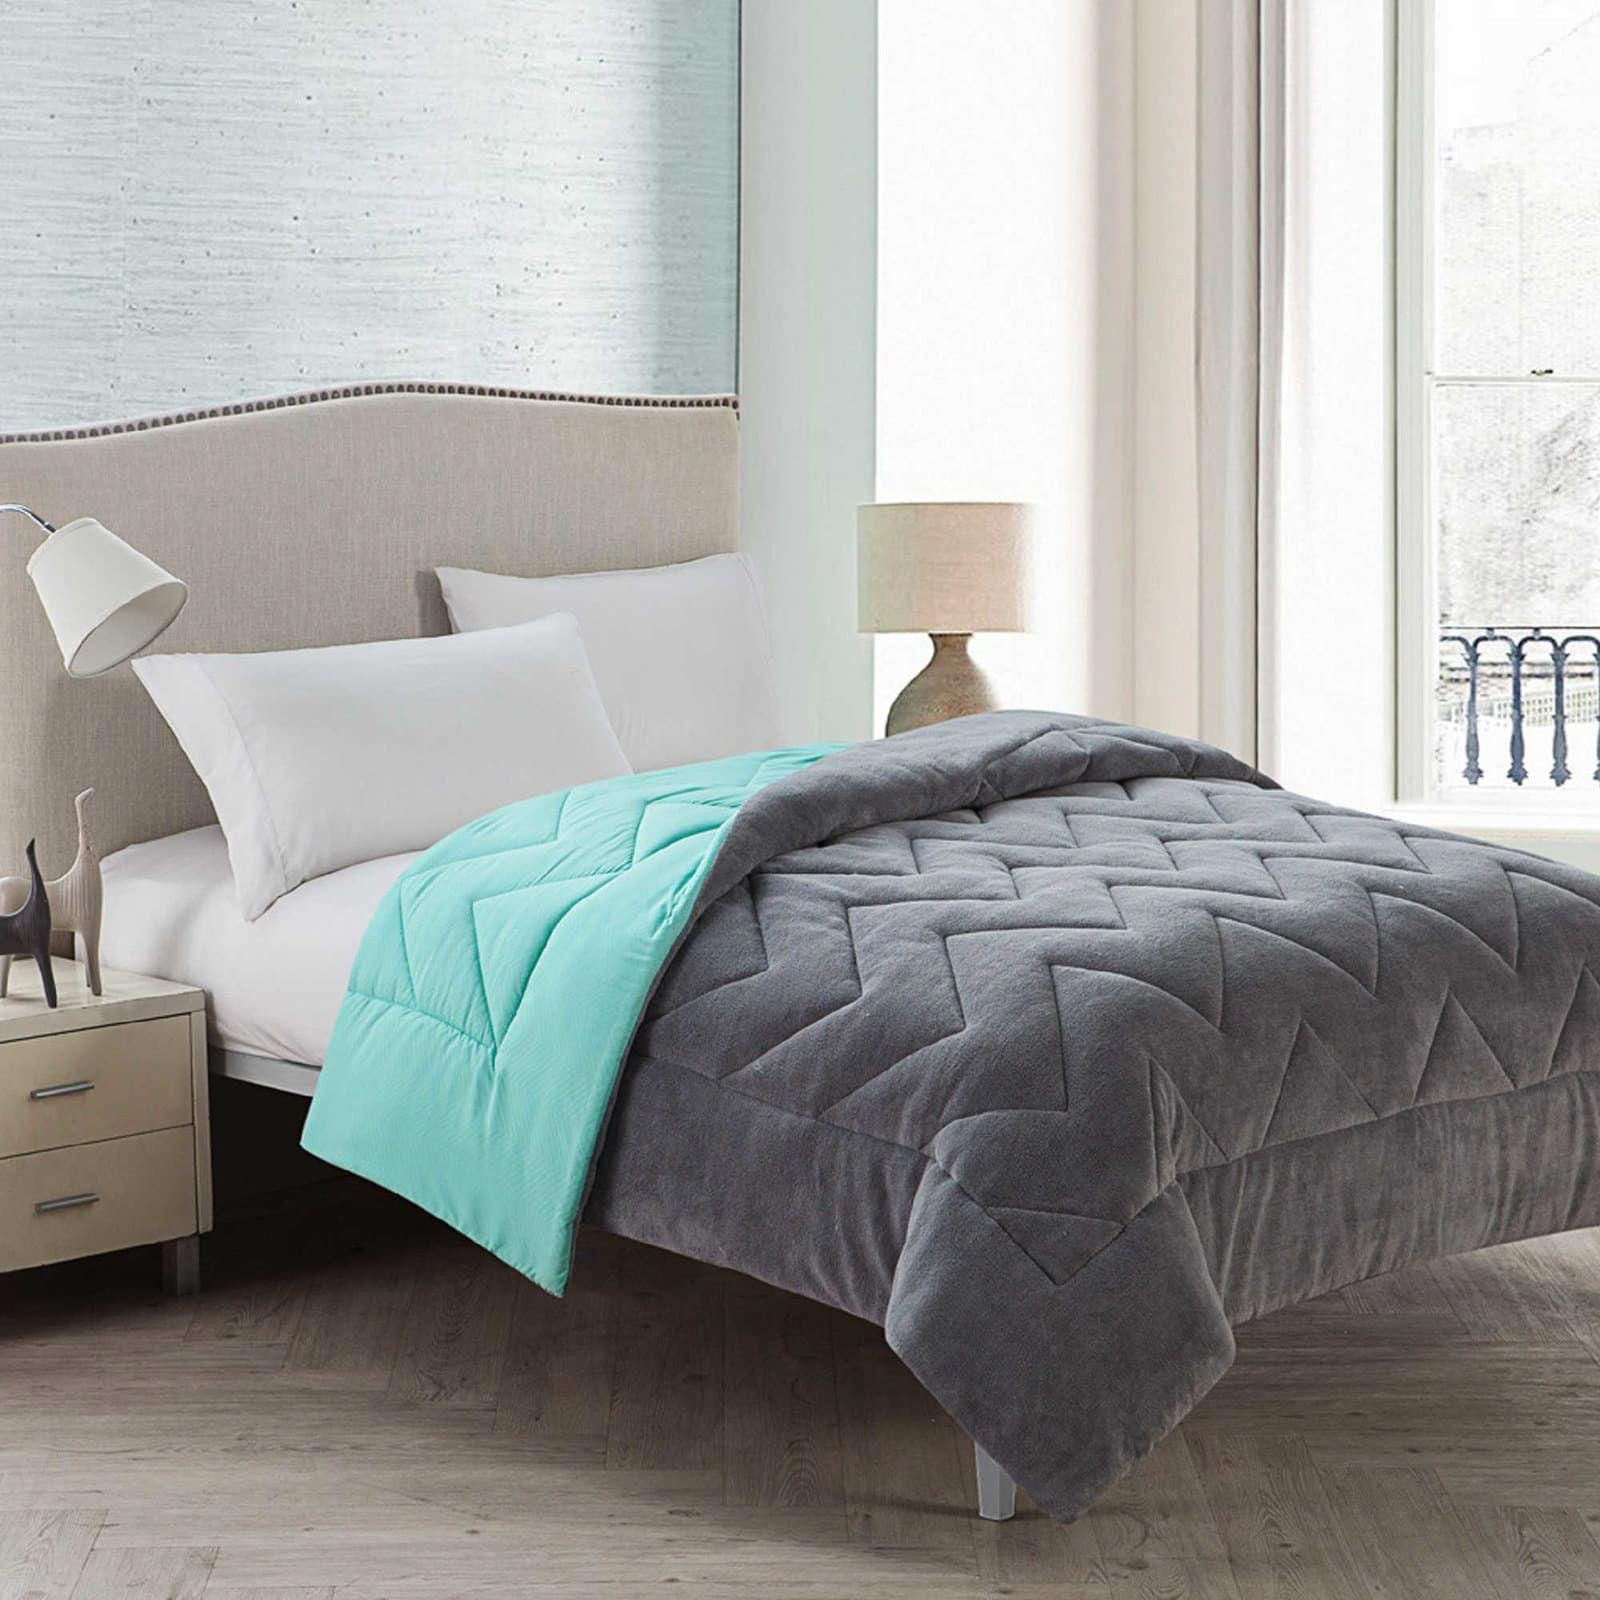 of the best places to buy bedding online chevronbedding